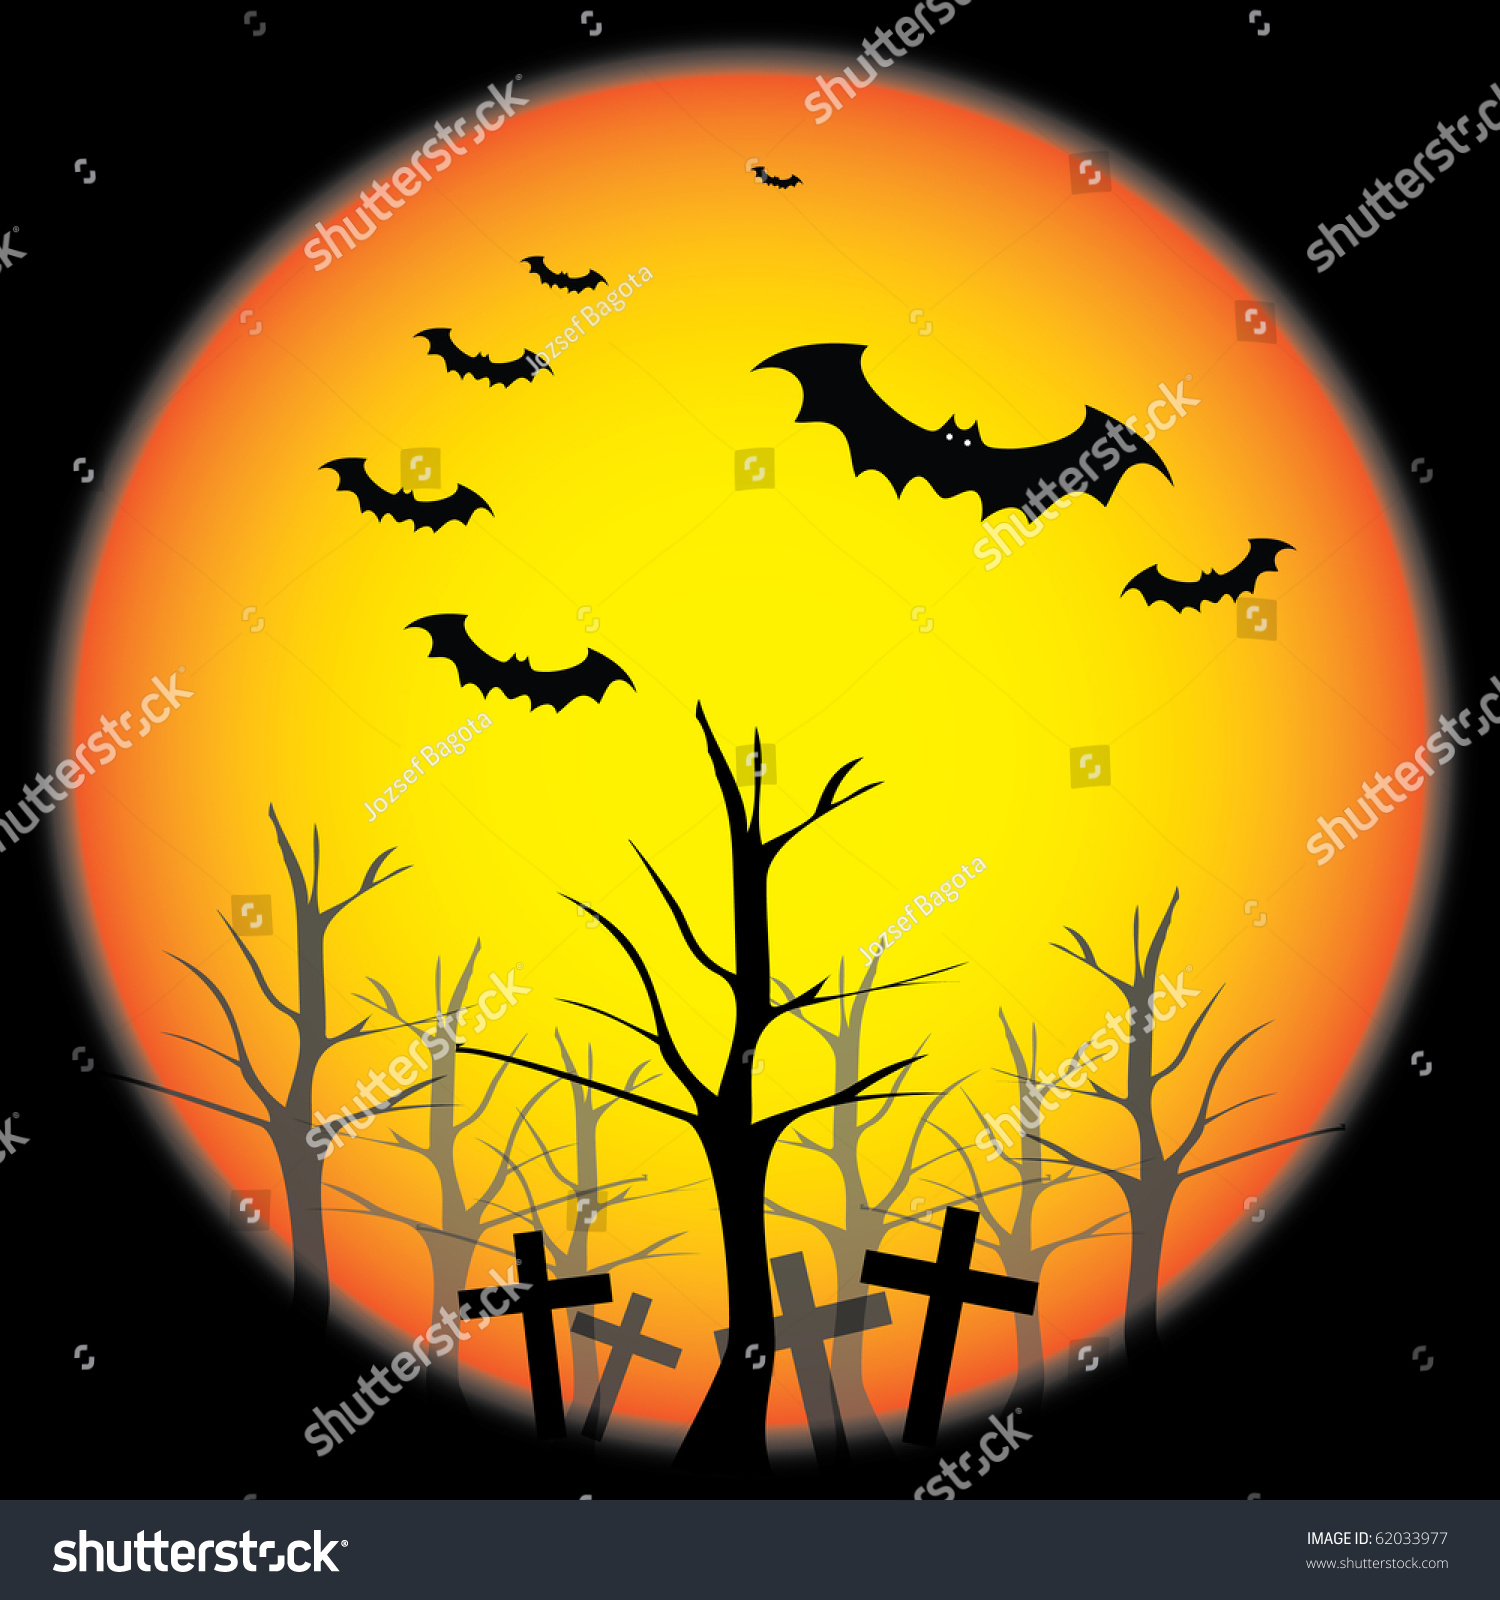 Halloween Background Template - Scary Flying Bats Over the Trees of ...